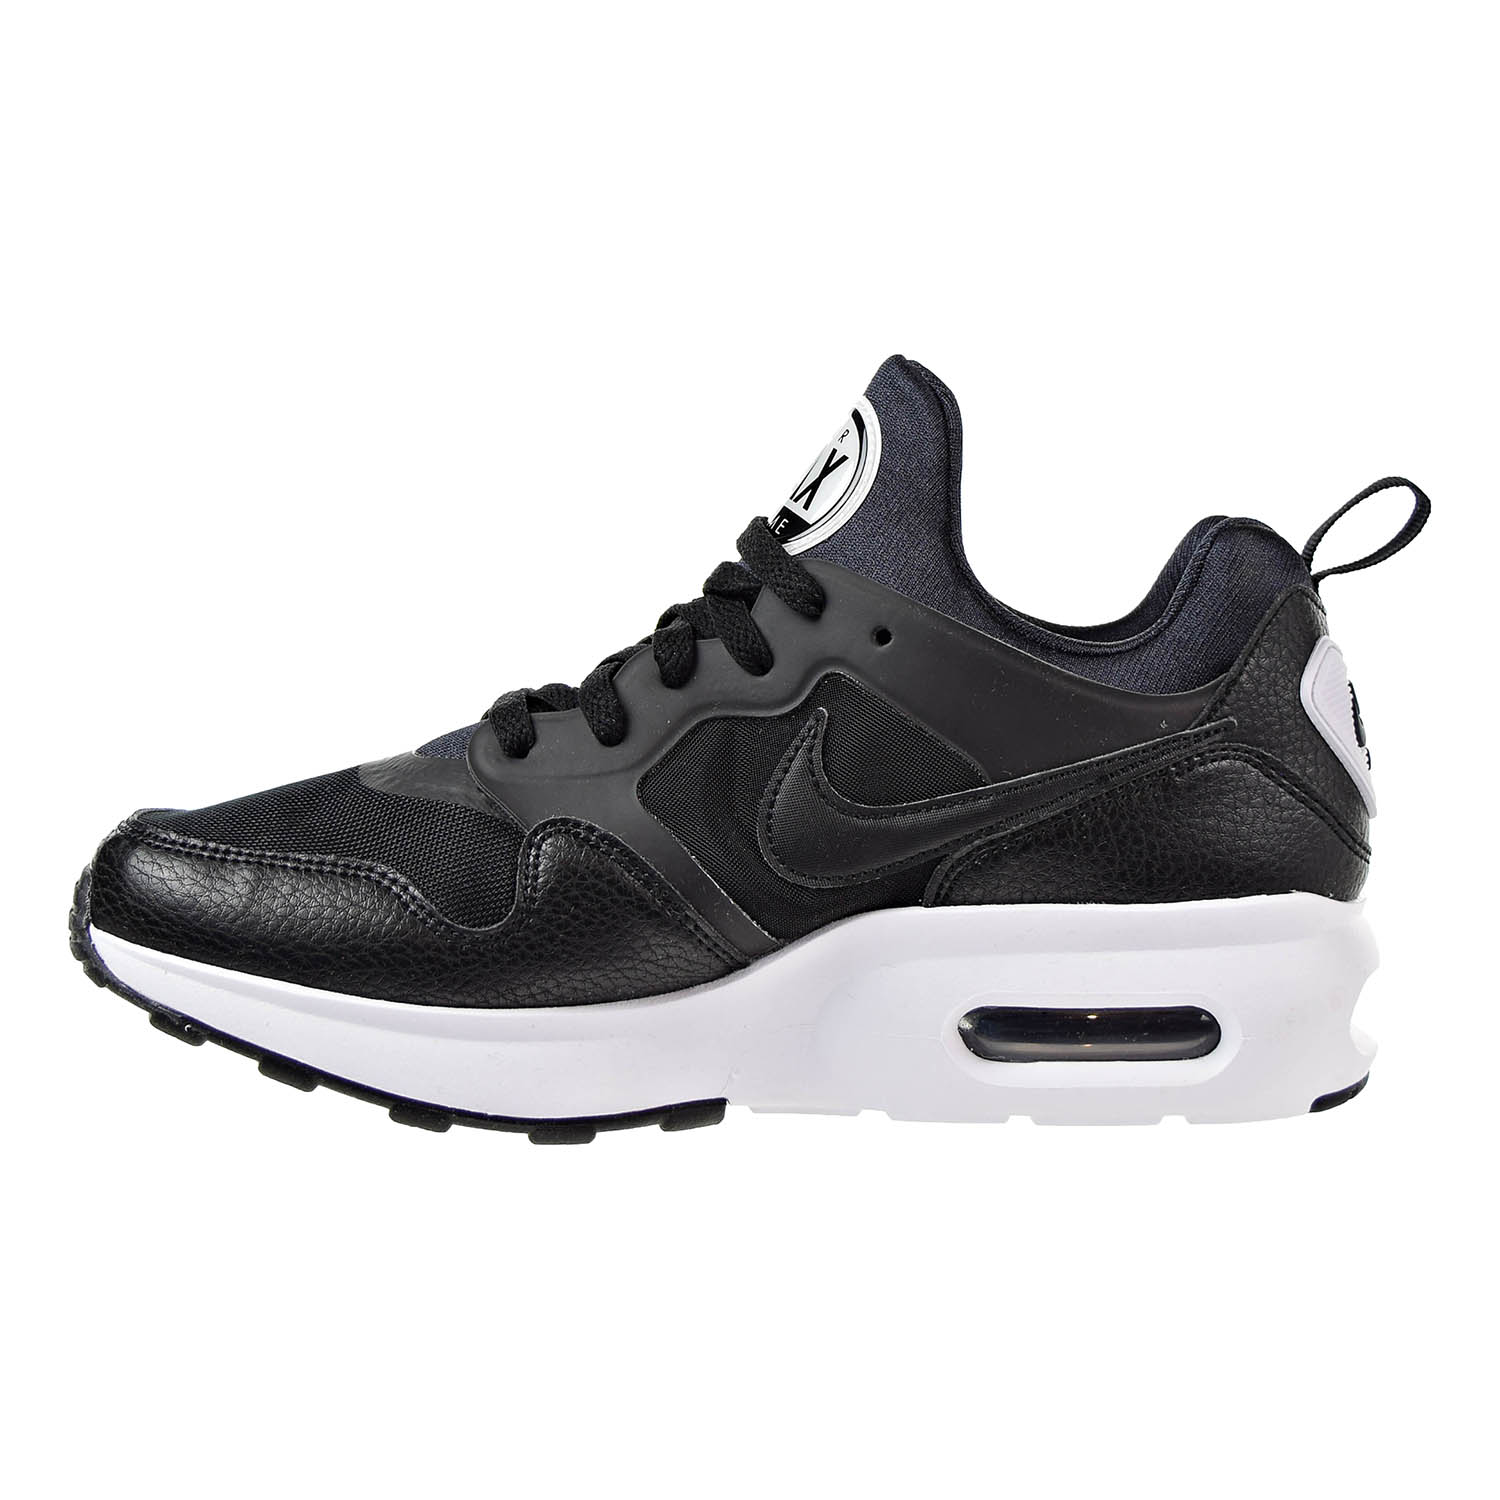 Nike Air Max Prime Economical, stylish, and eye-catching shoes